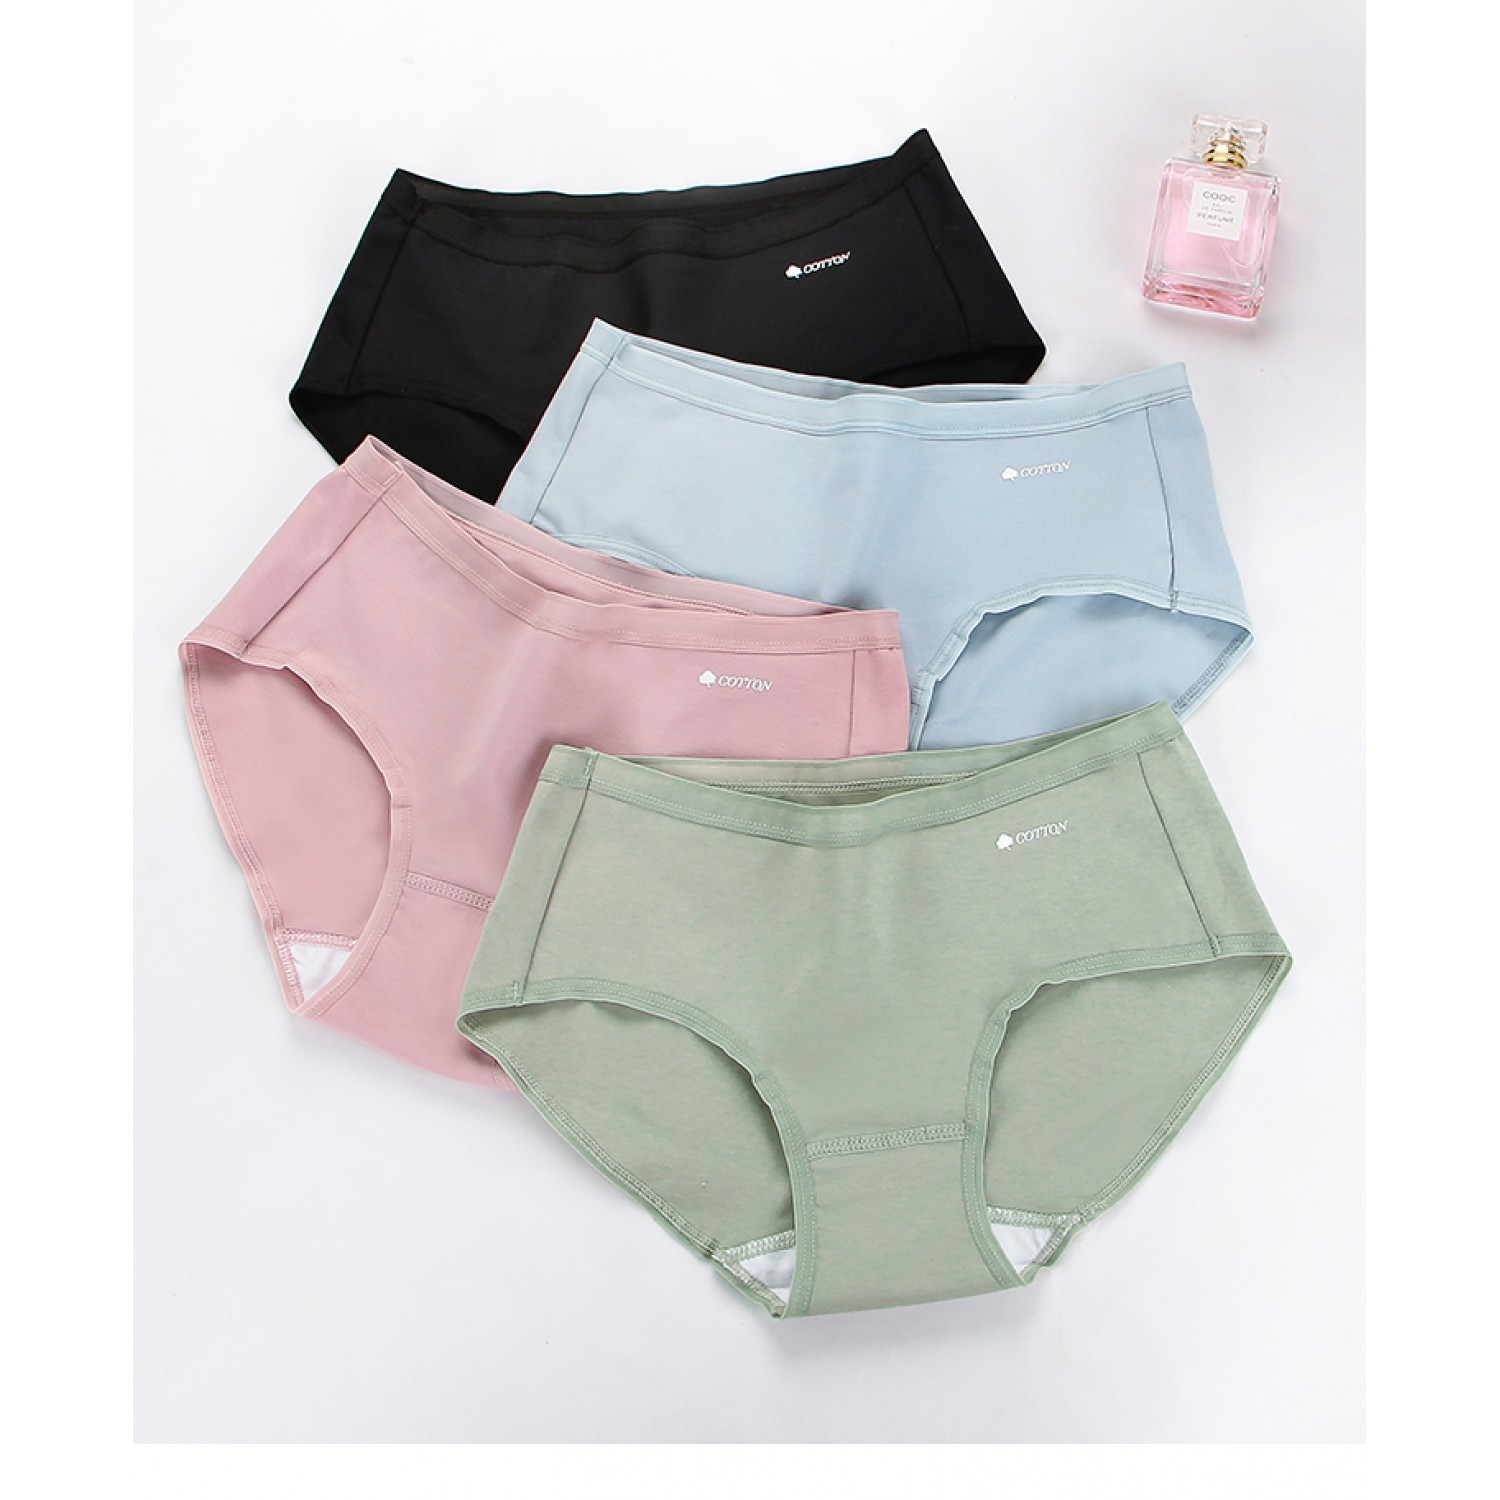 Goji cotton panties - combo of 3